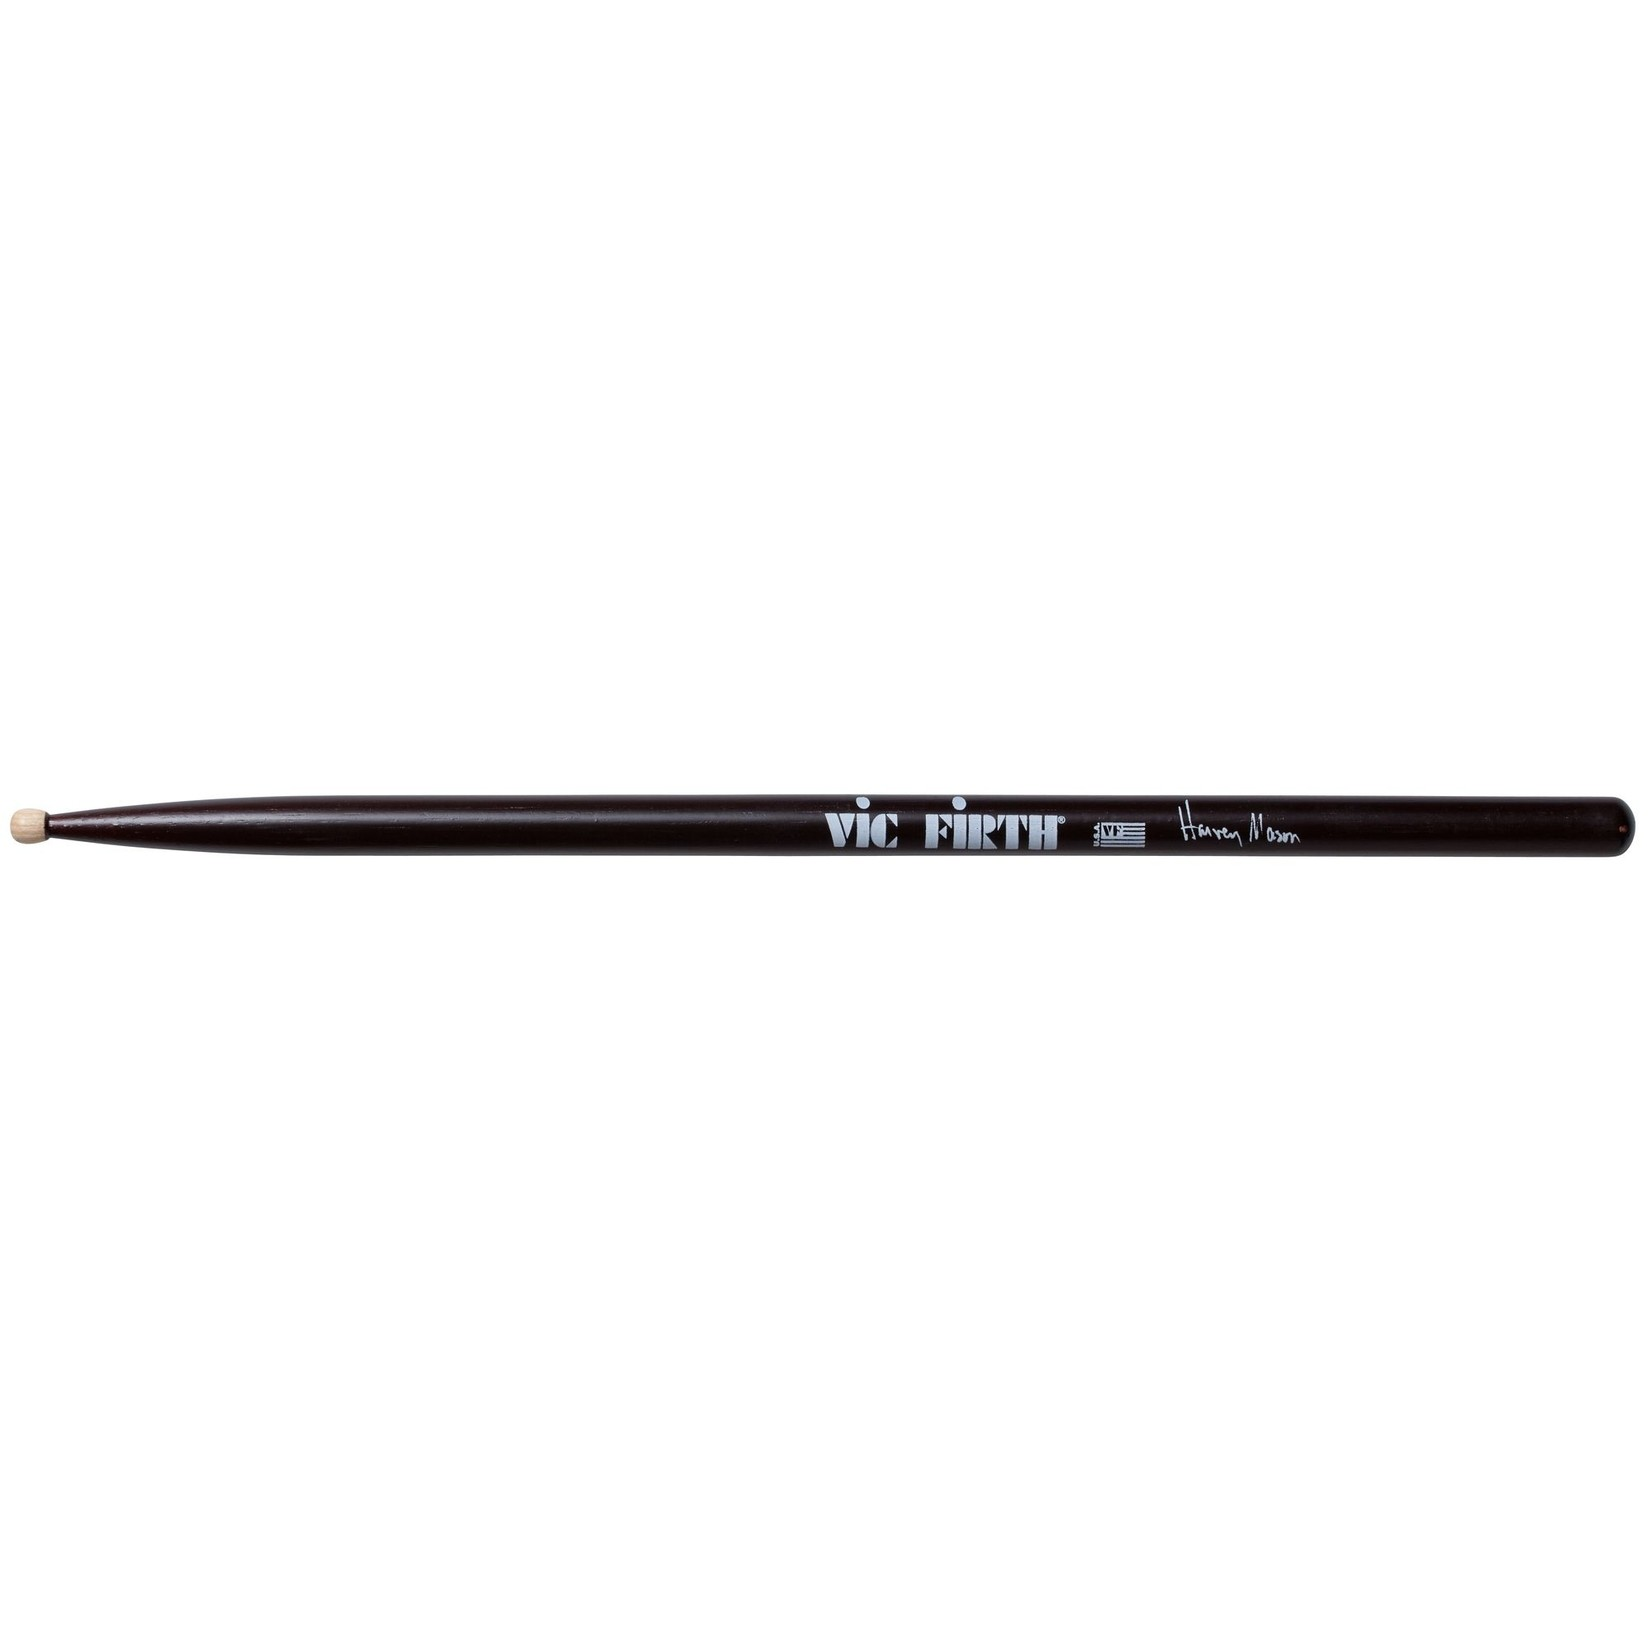 Vic Firth Vic Firth Signature Series -- Harvey Mason